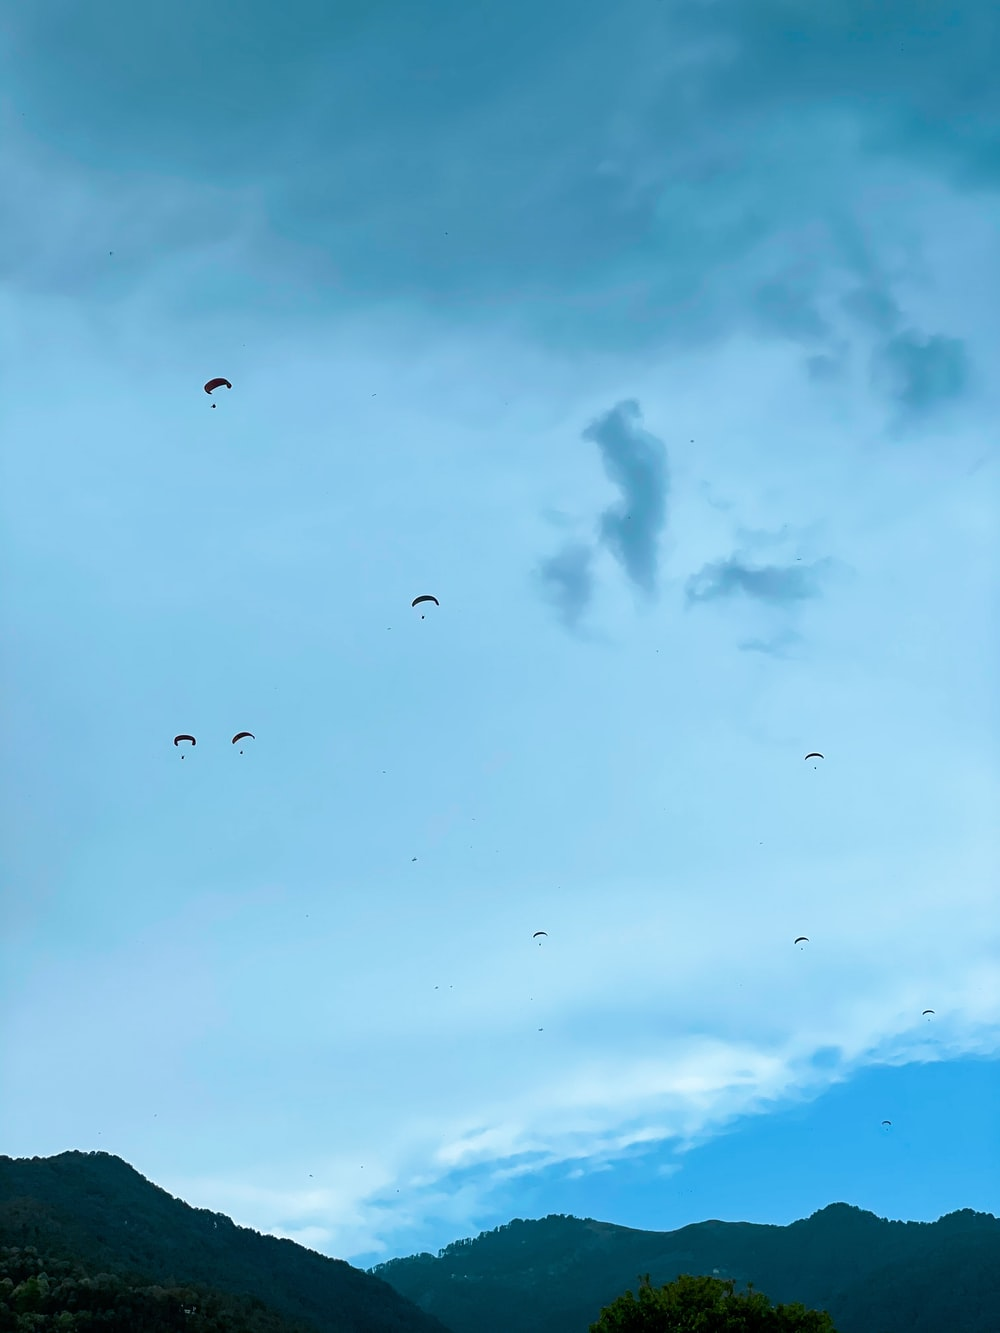 silhouette of birds flying under cloudy sky during daytime